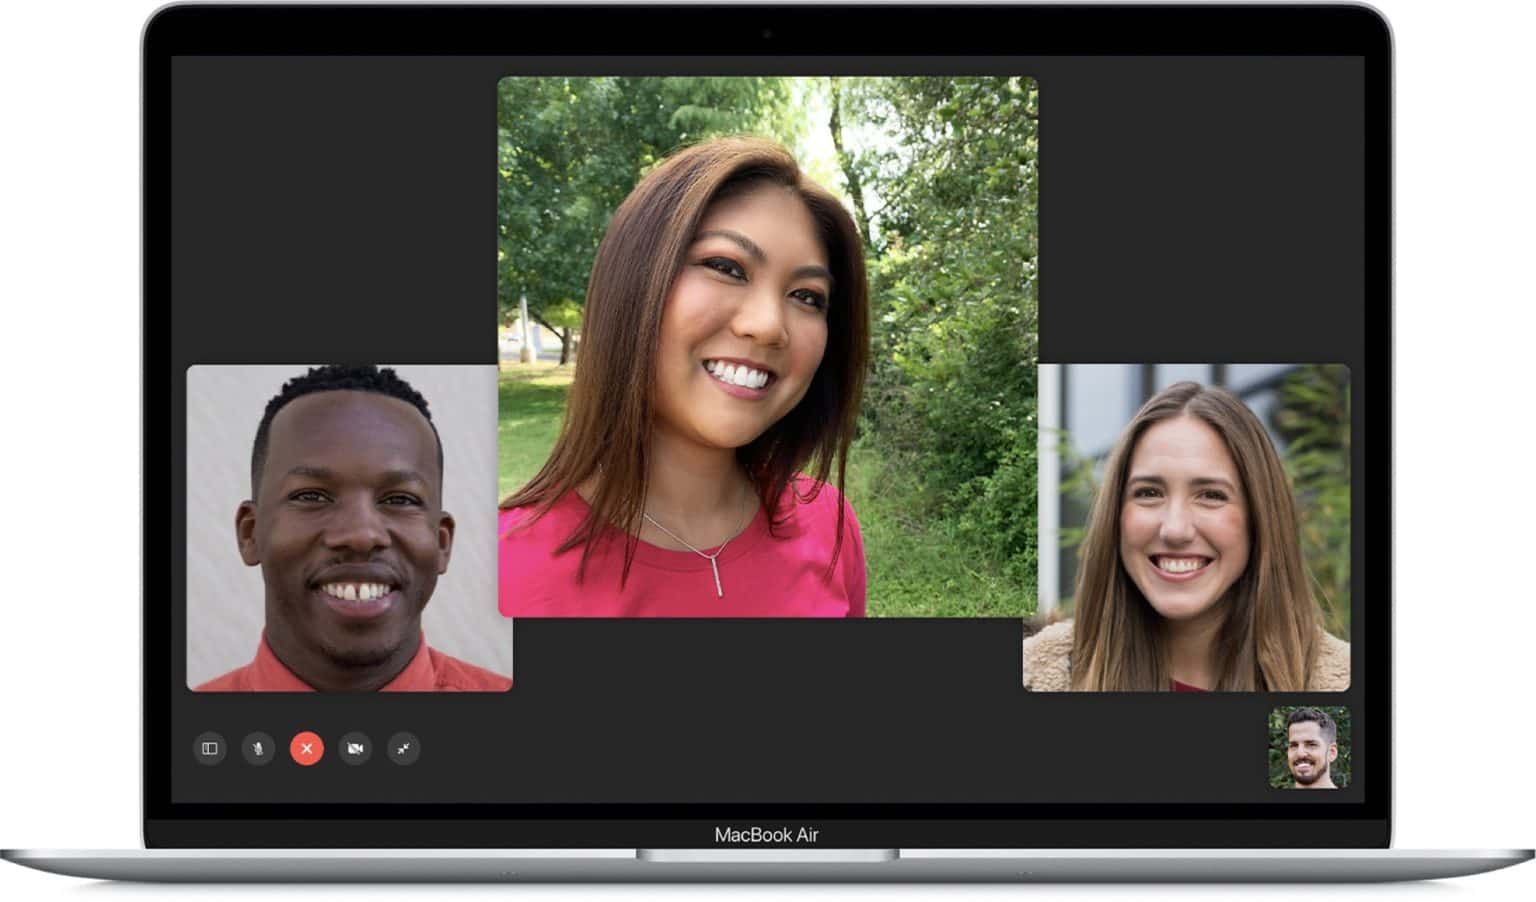 A Group FaceTime call on the Mac.